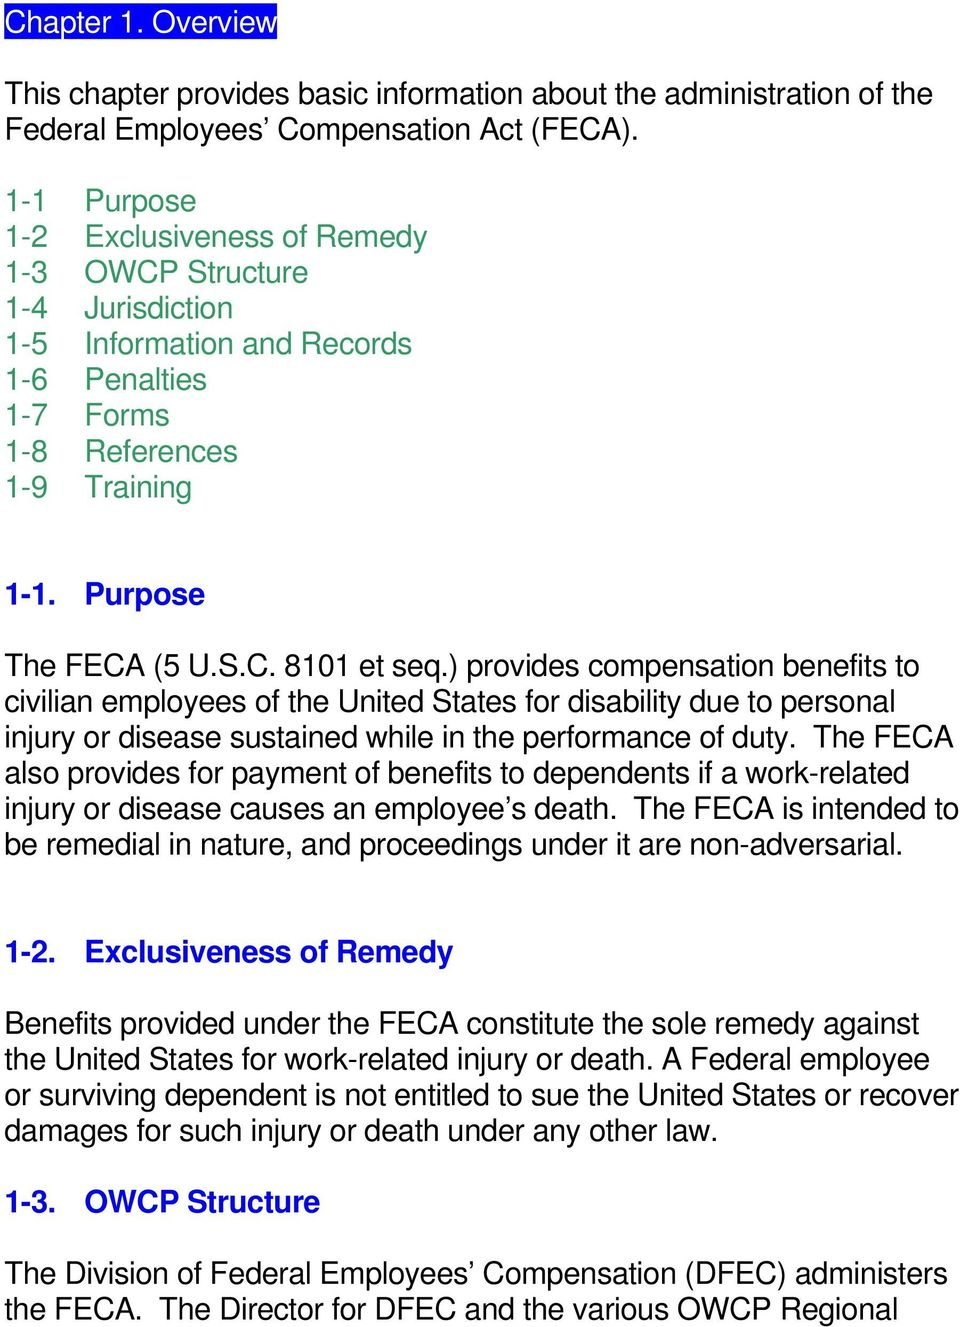 ) provides compensation benefits to civilian employees of the United States for disability due to personal injury or disease sustained while in the performance of duty.